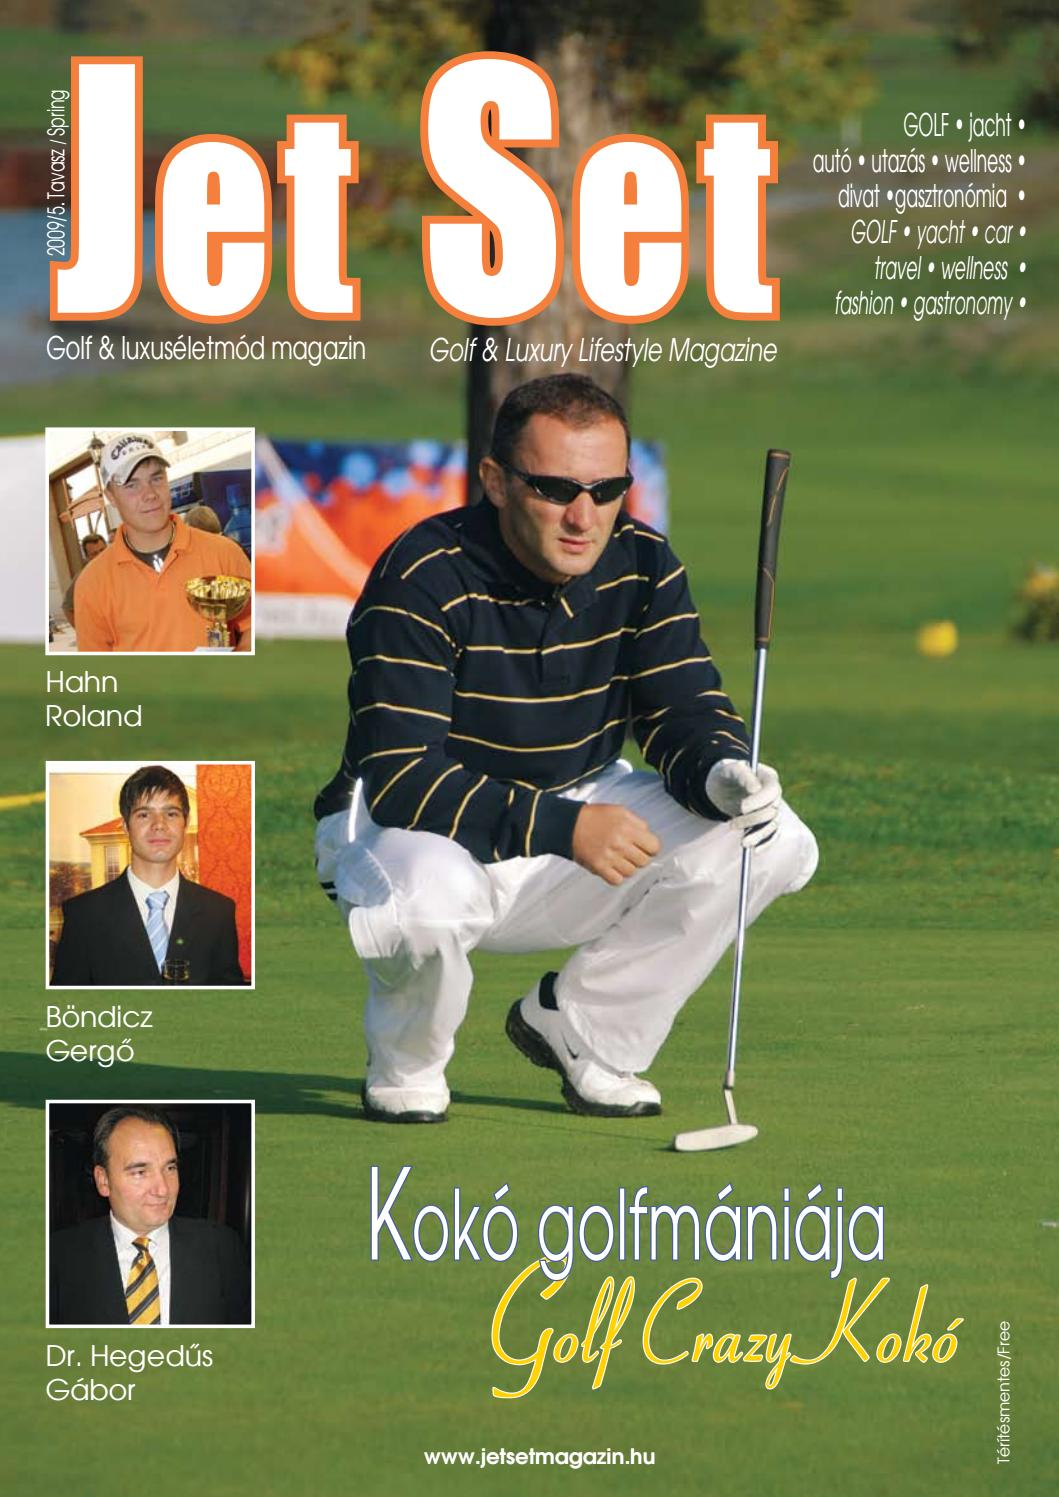 Jet Set 2009 tavasz by LKG Media Kft - issuu 4312d001b7